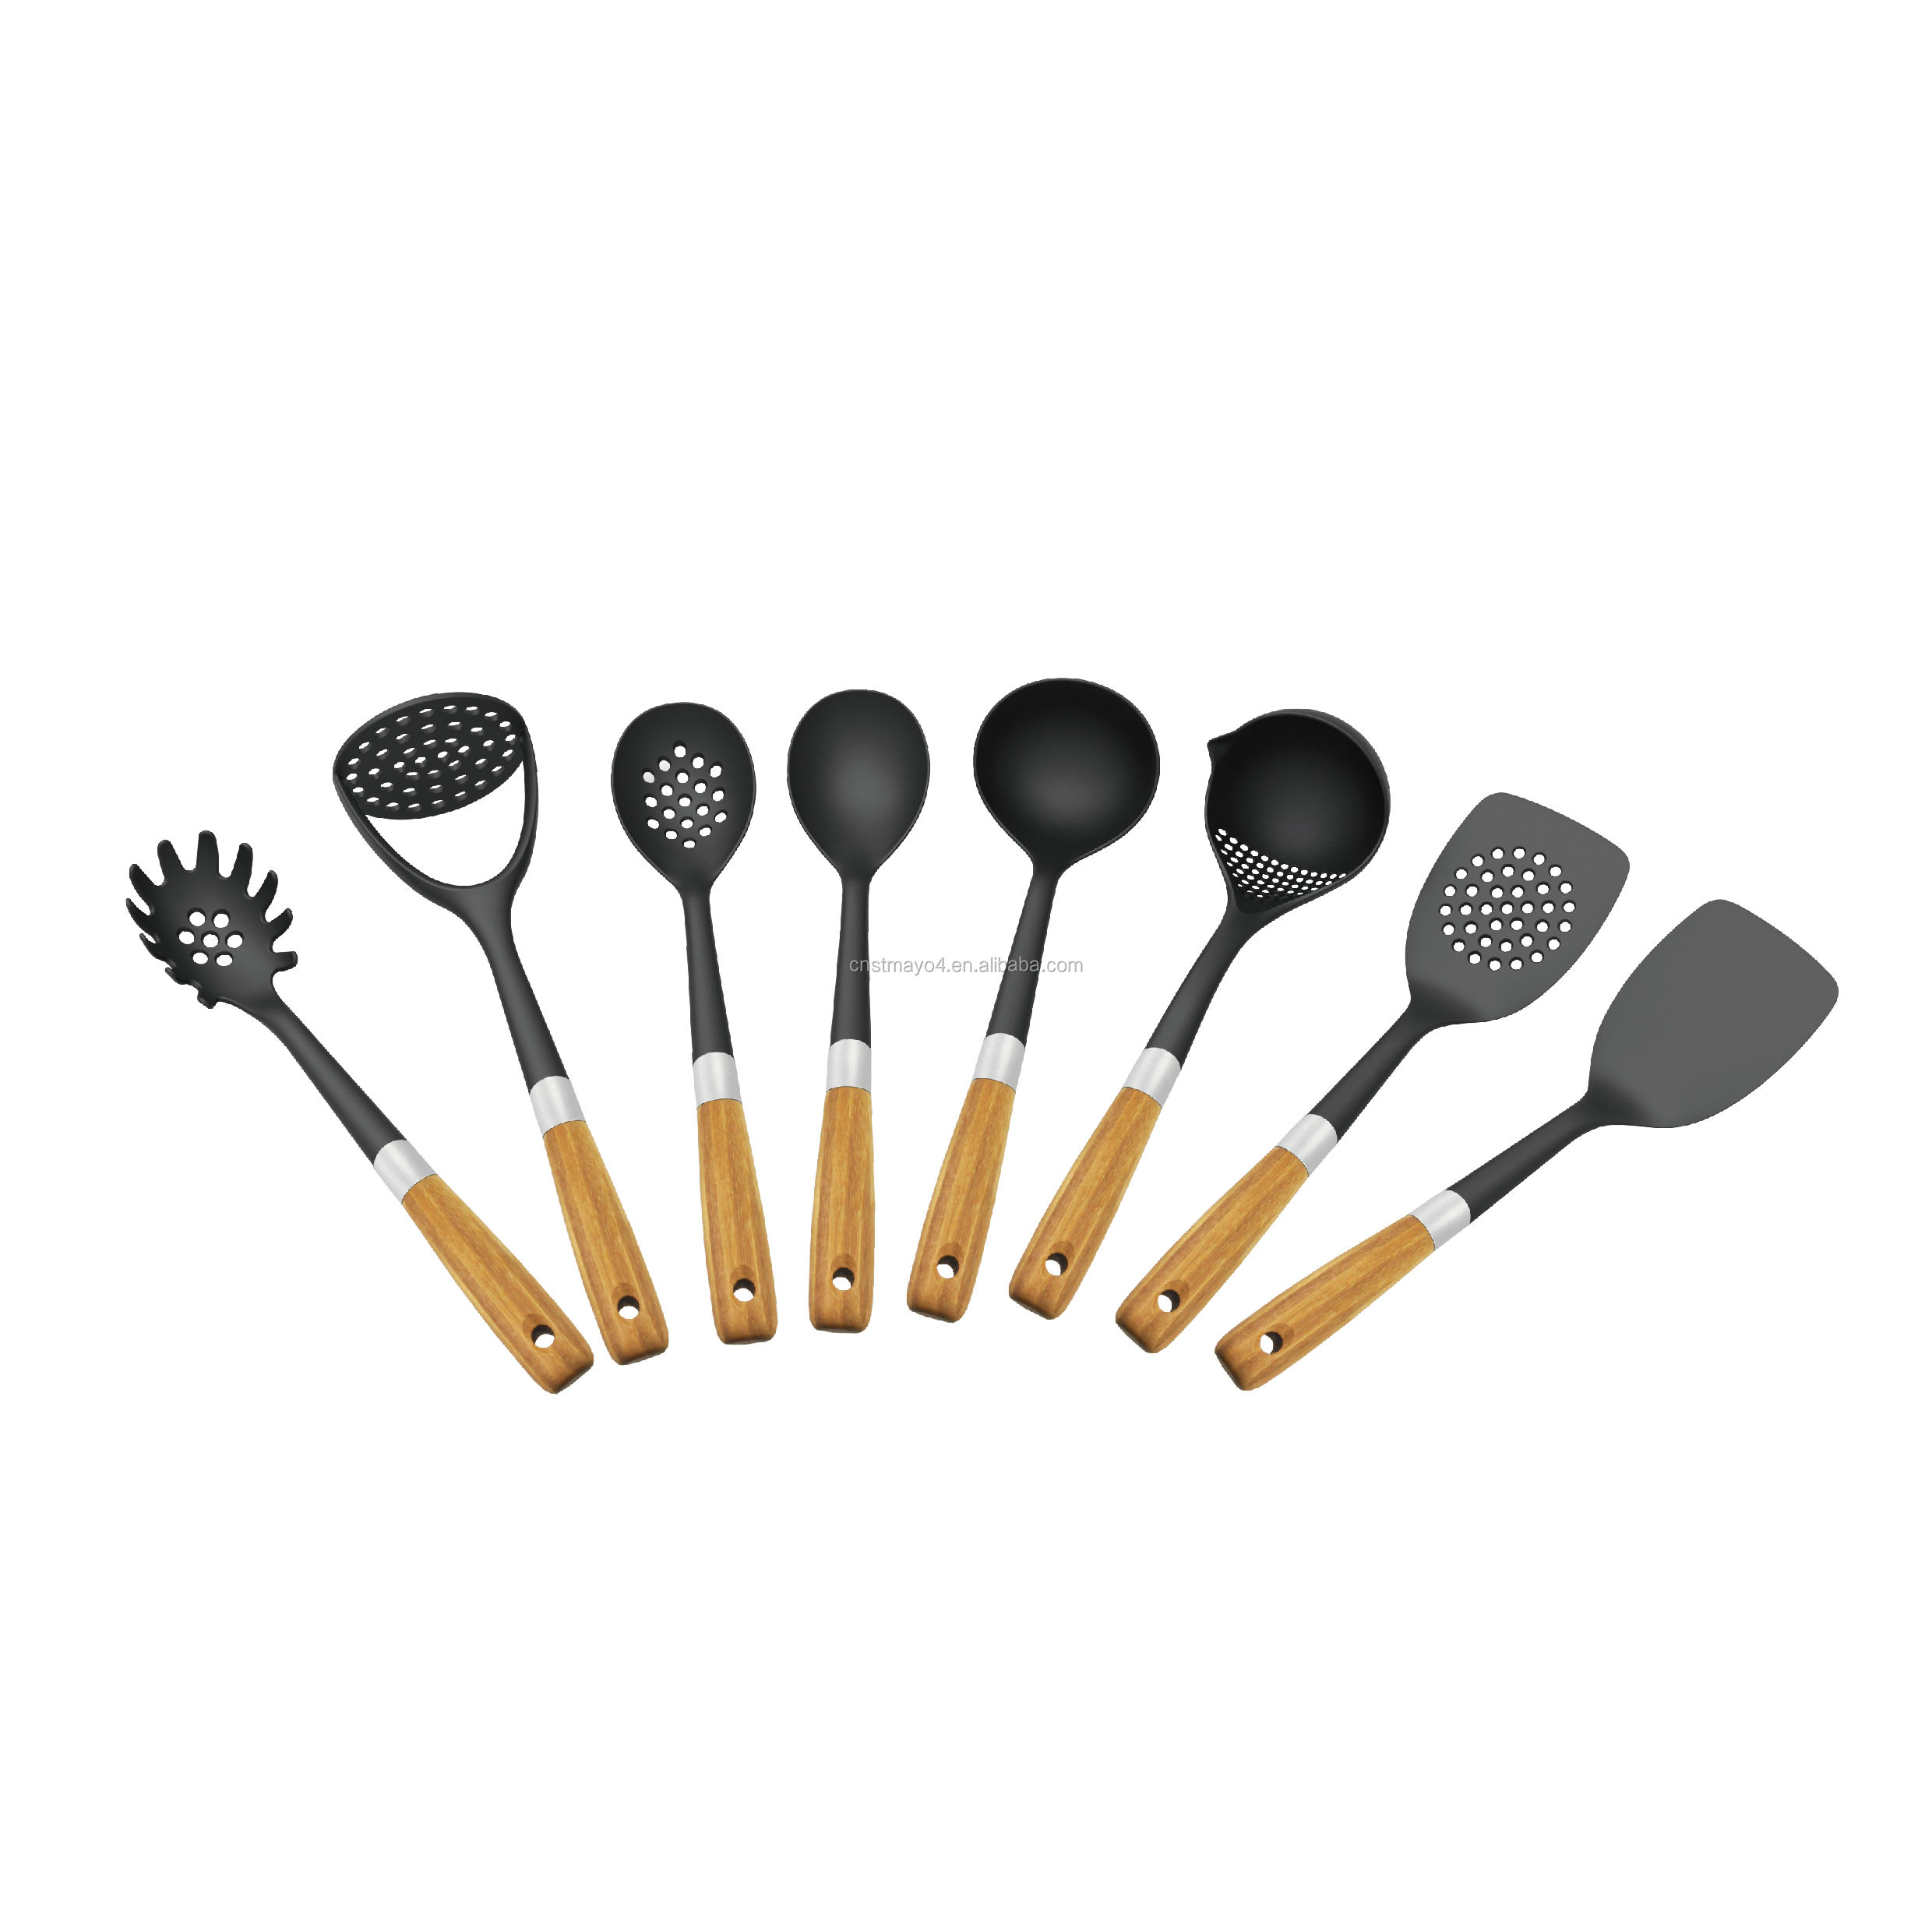 Smart Silicone Kitchen tools and equipment Guangdong